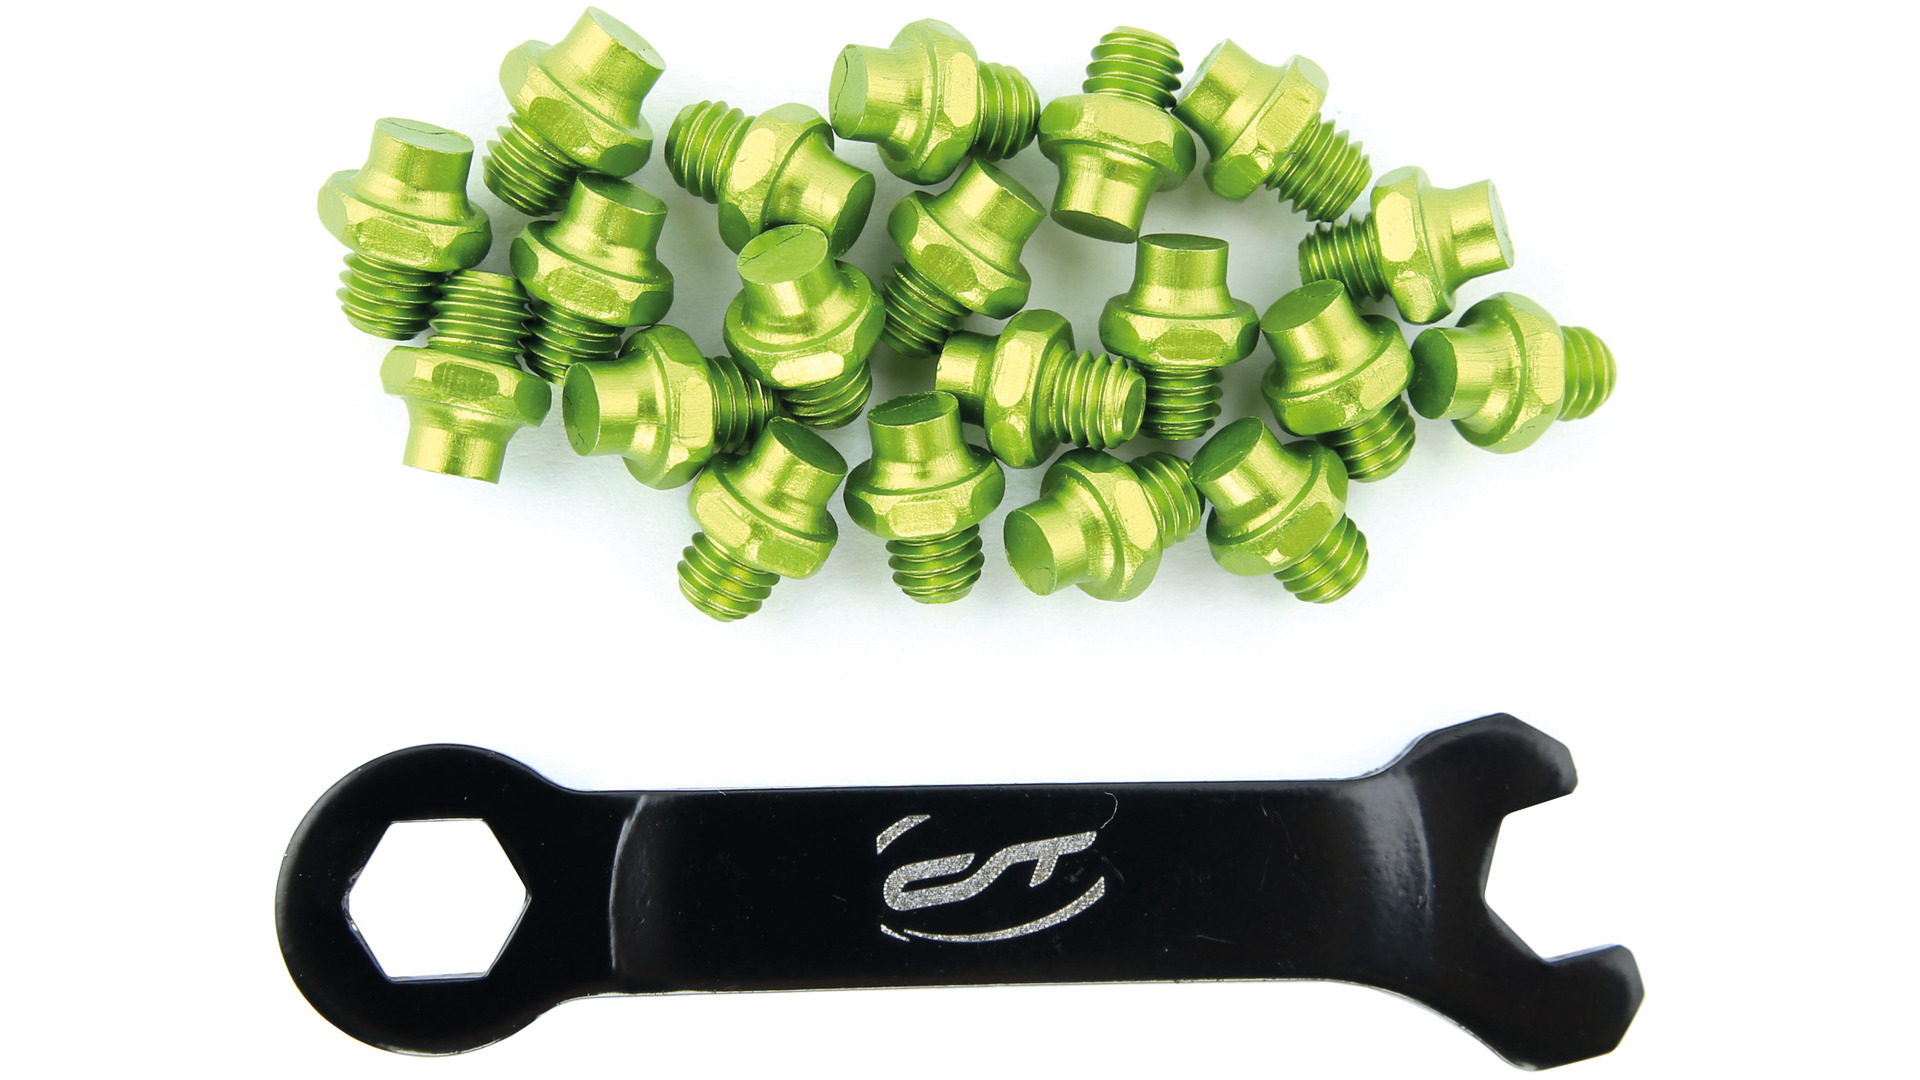 Contec Pedal Pins R-Pins Select with Wrench - Green (20)